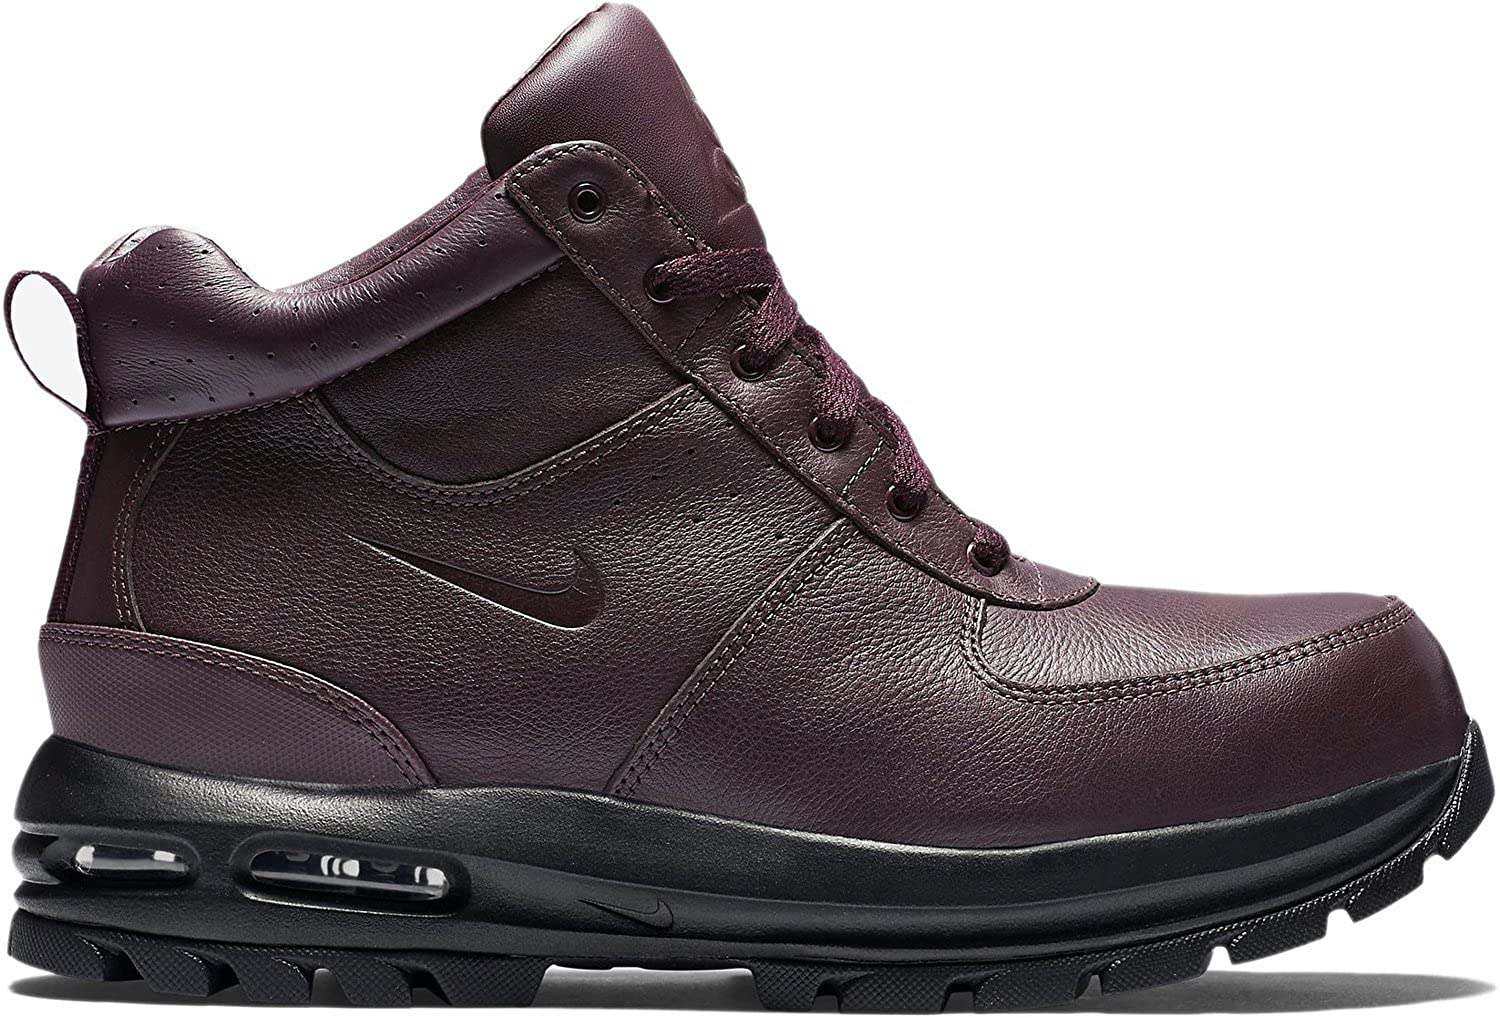 c5c6e4b8c7 Amazon.com | Nike Men's Air Max Goaterra Boot | Hiking Boots